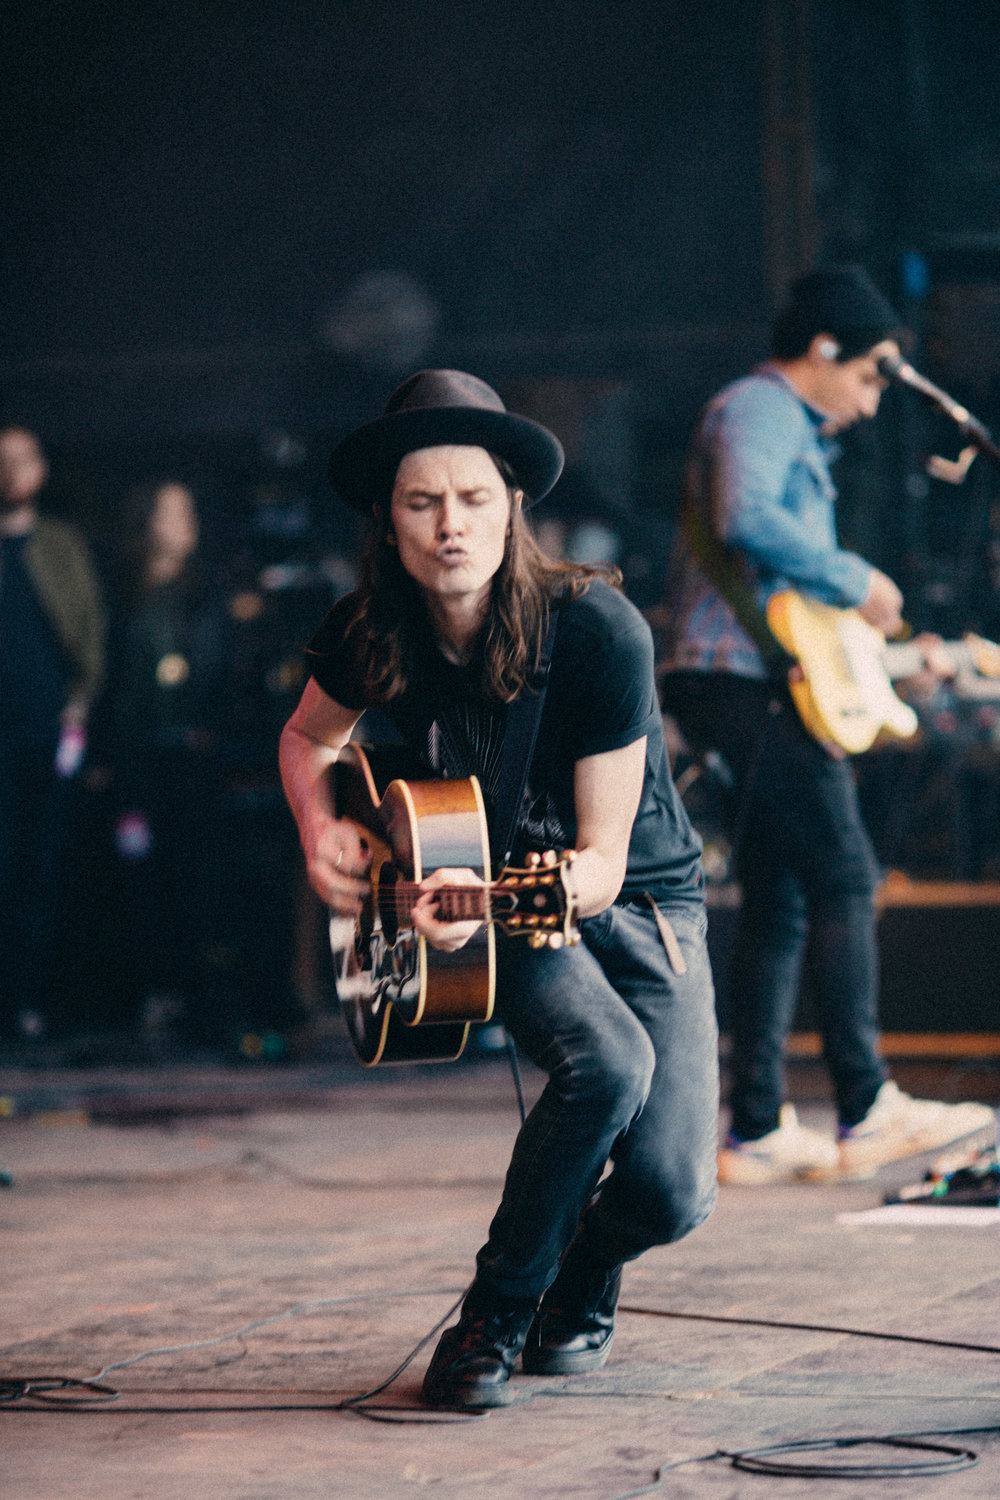 James Bay Electric Picnic 7.jpg